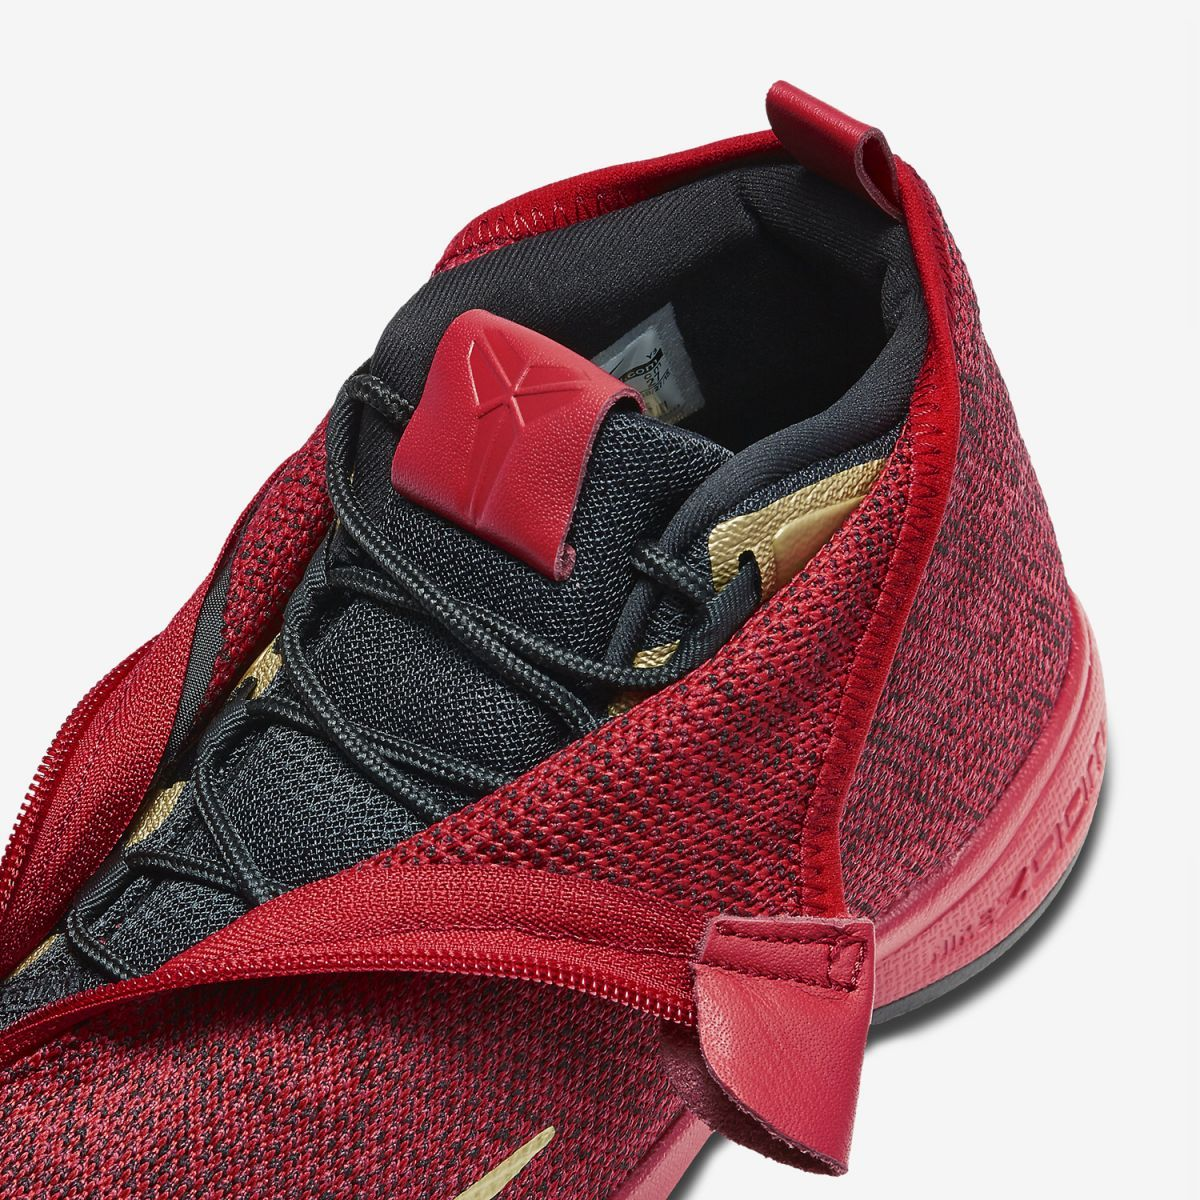 Detailed images and potential release information for the Nike Zoom Kobe  Icon Red / Gold-